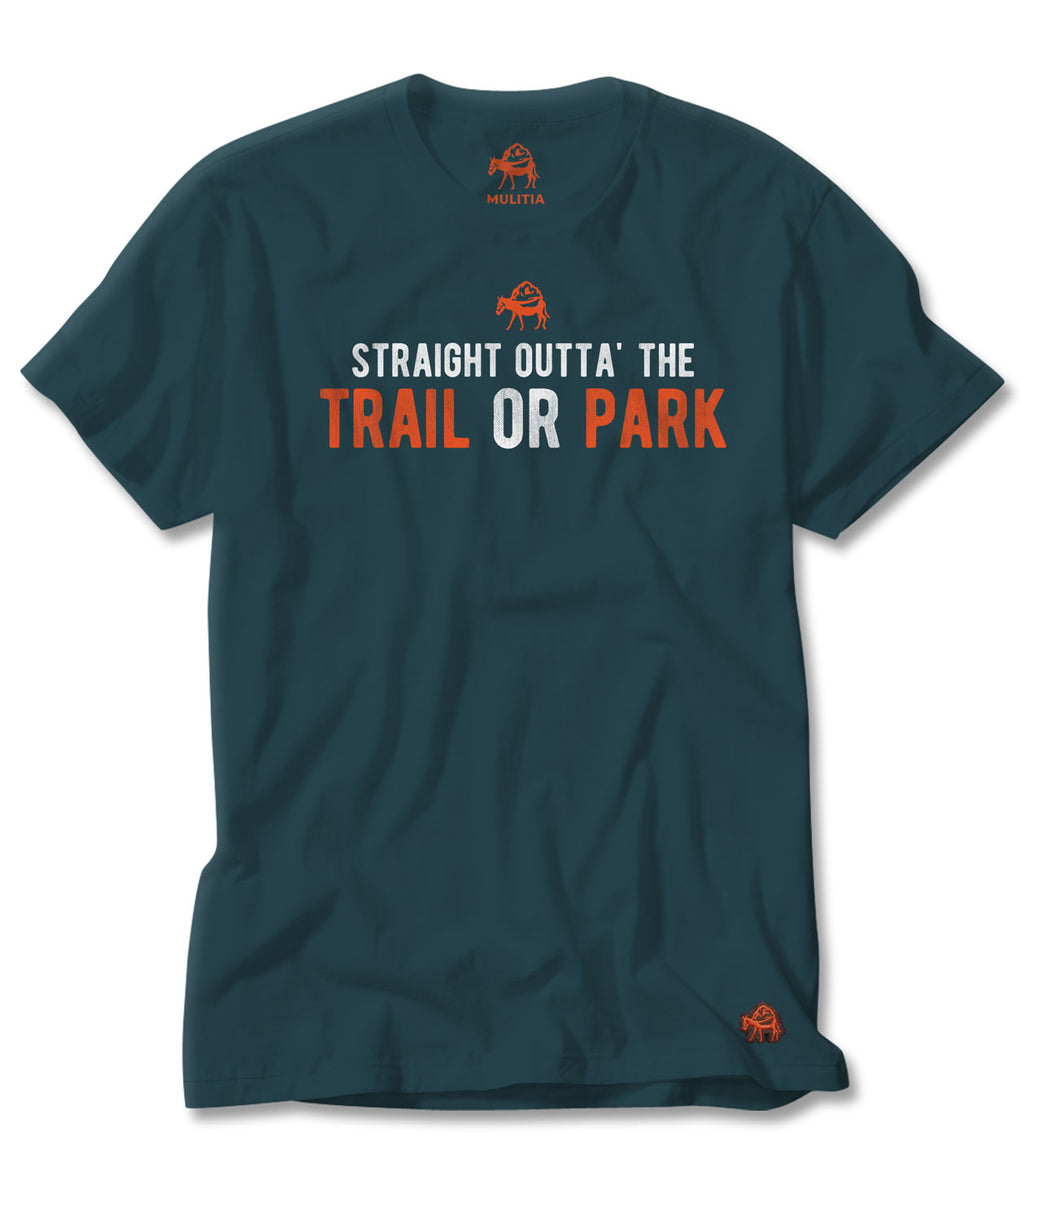 Trail or Park Tee in Teal